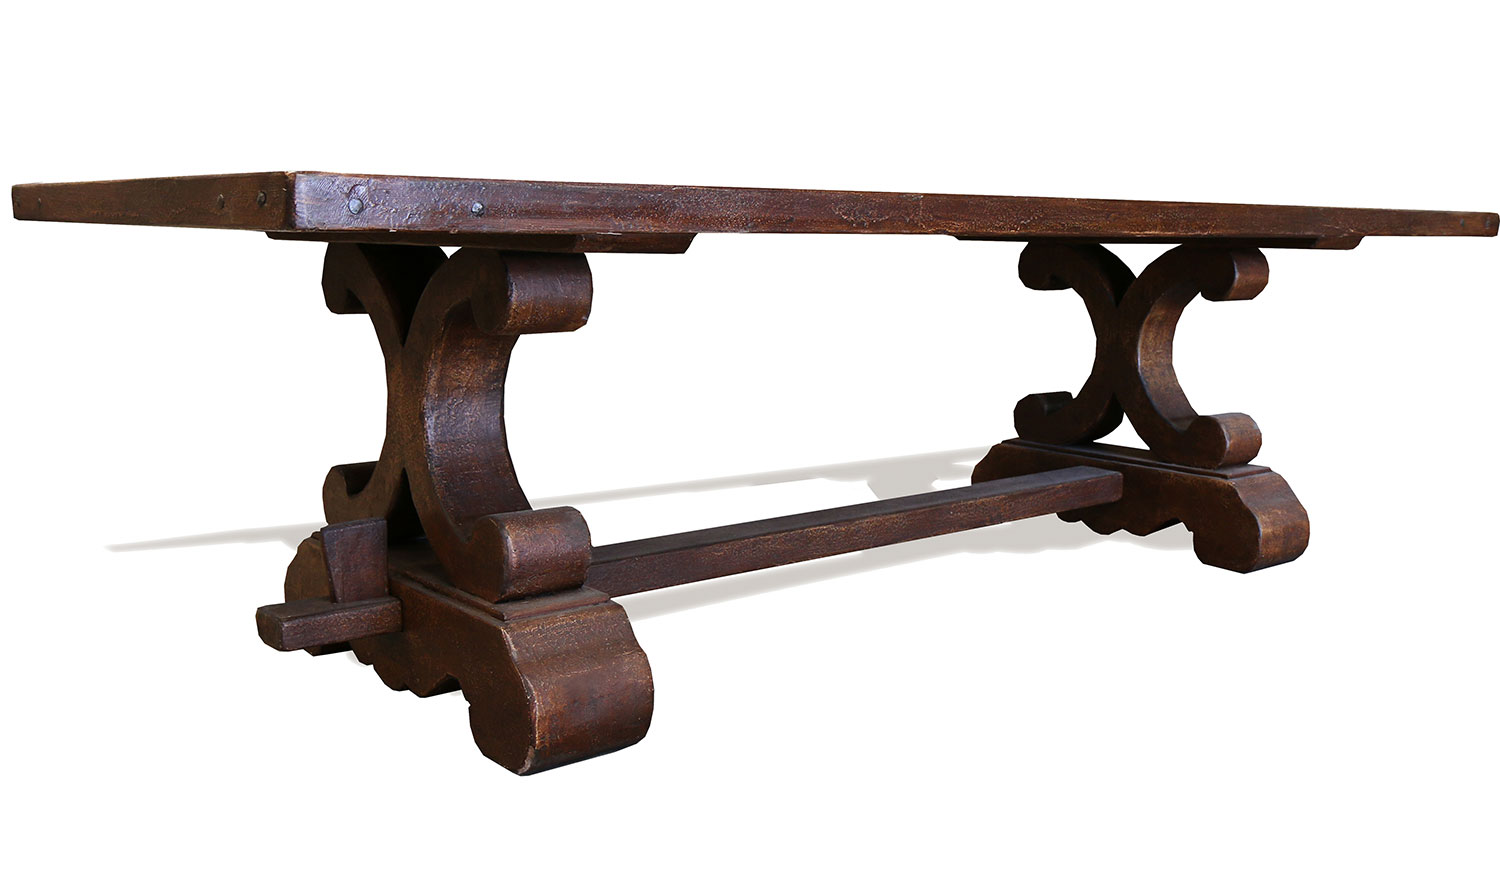 KOENIG TUSCAN AUSTIN OLD WORLD DINING TABLE BROWN KOENIG COLLECTION